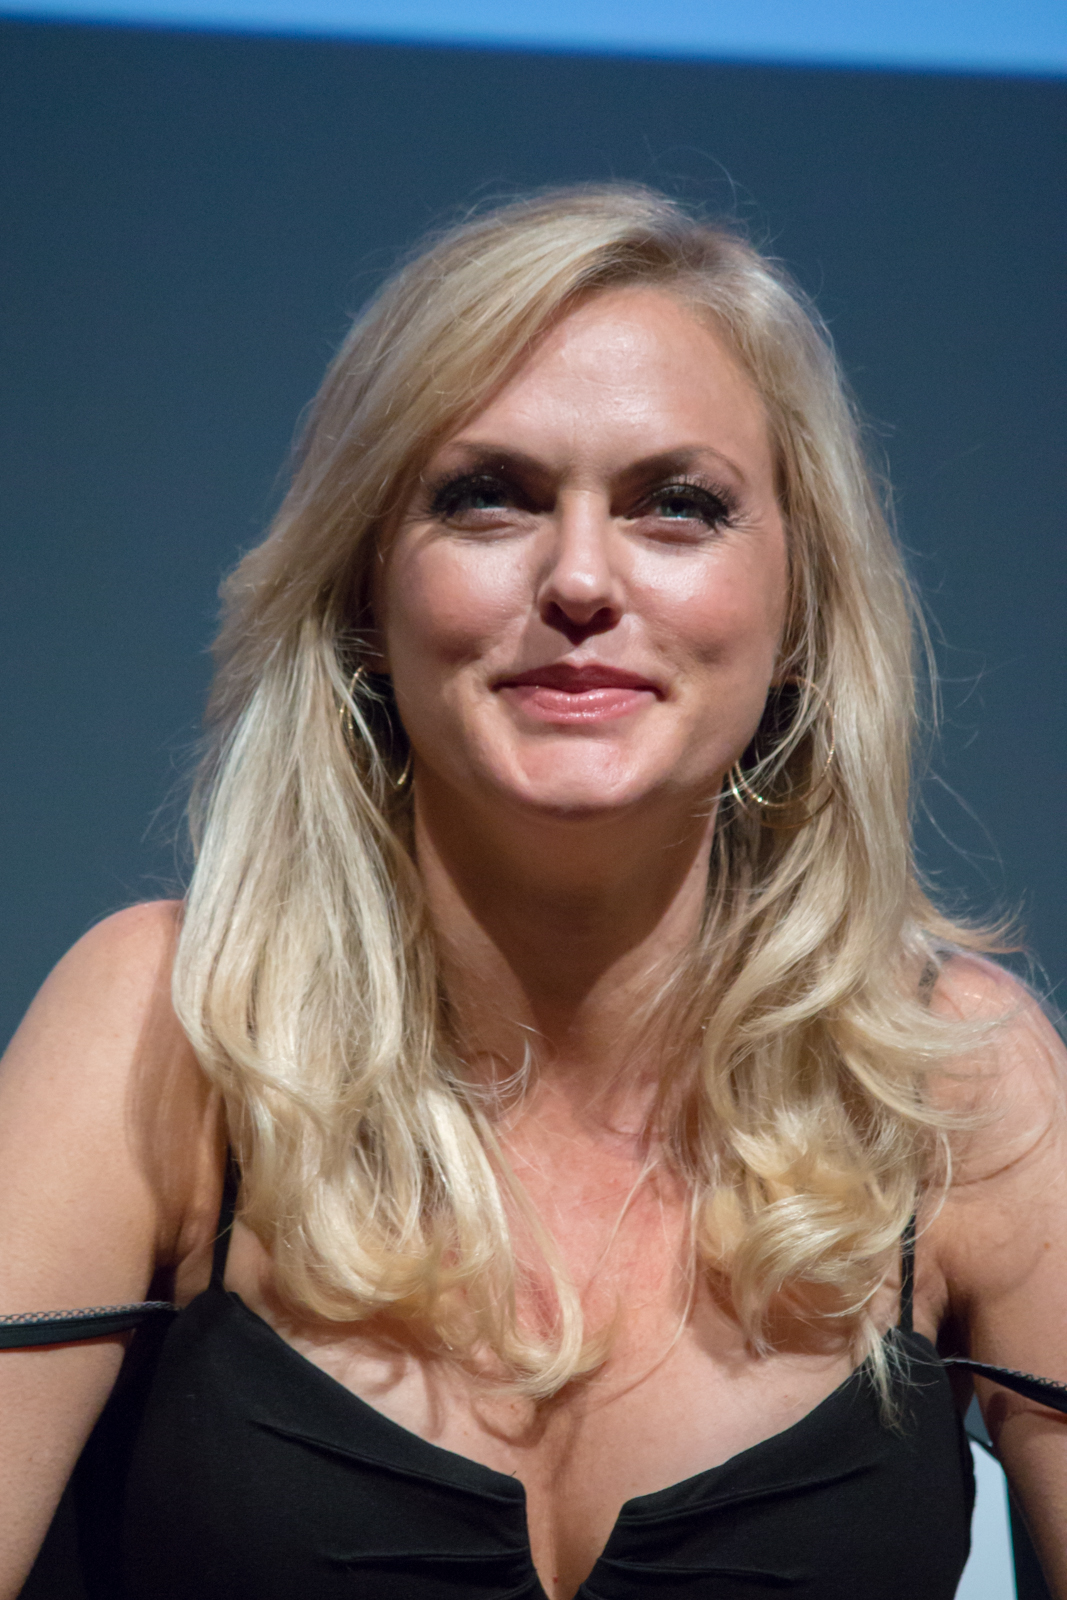 Fotos Elaine Hendrix nude photos 2019